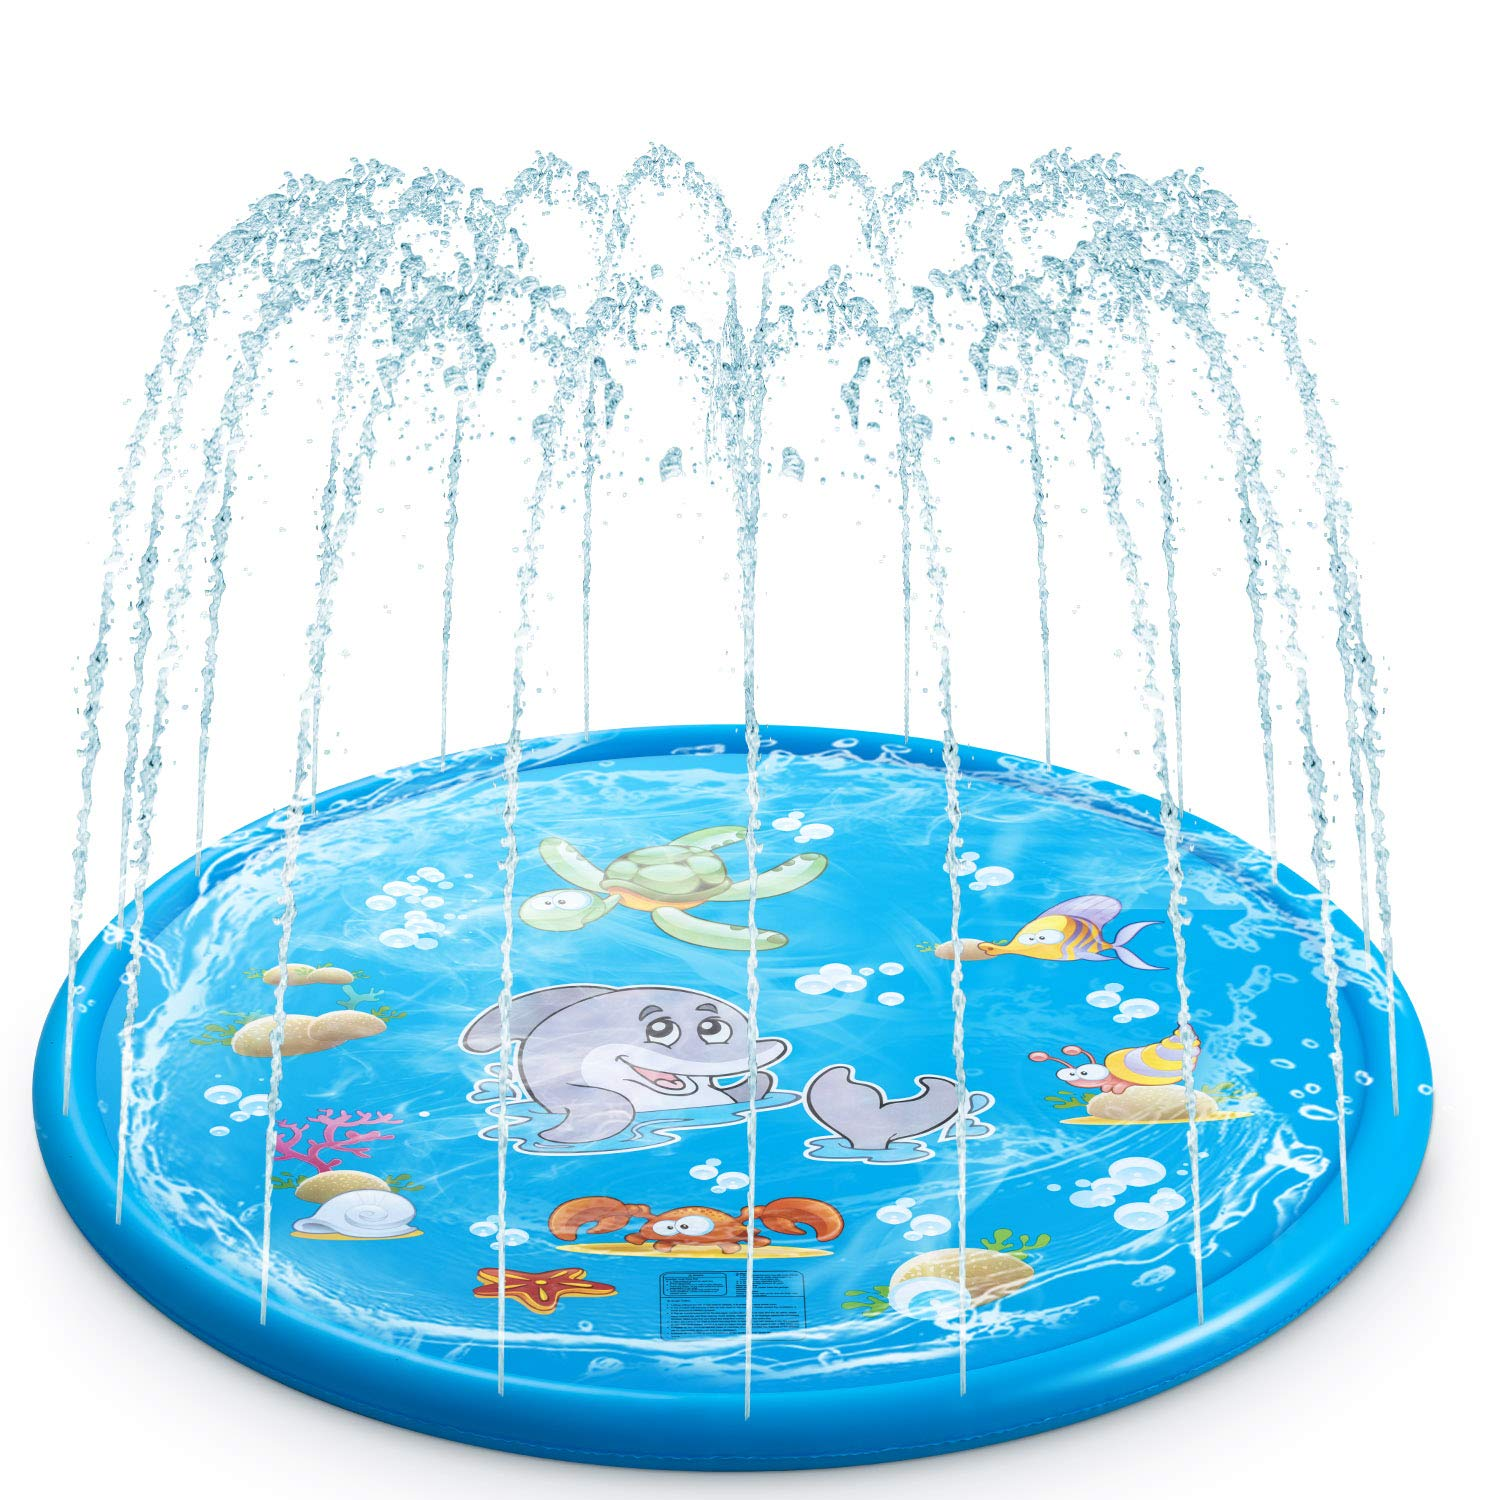 Water Baby Water Sprinkler Pad for Kids, Upgraded 68' Summer Outdoor Water Toys Wading Pool Splash Play Mat for Toddlers Baby, Outside Water Play Mat for 1-12 Years Old Children Boys Girls by Water Baby